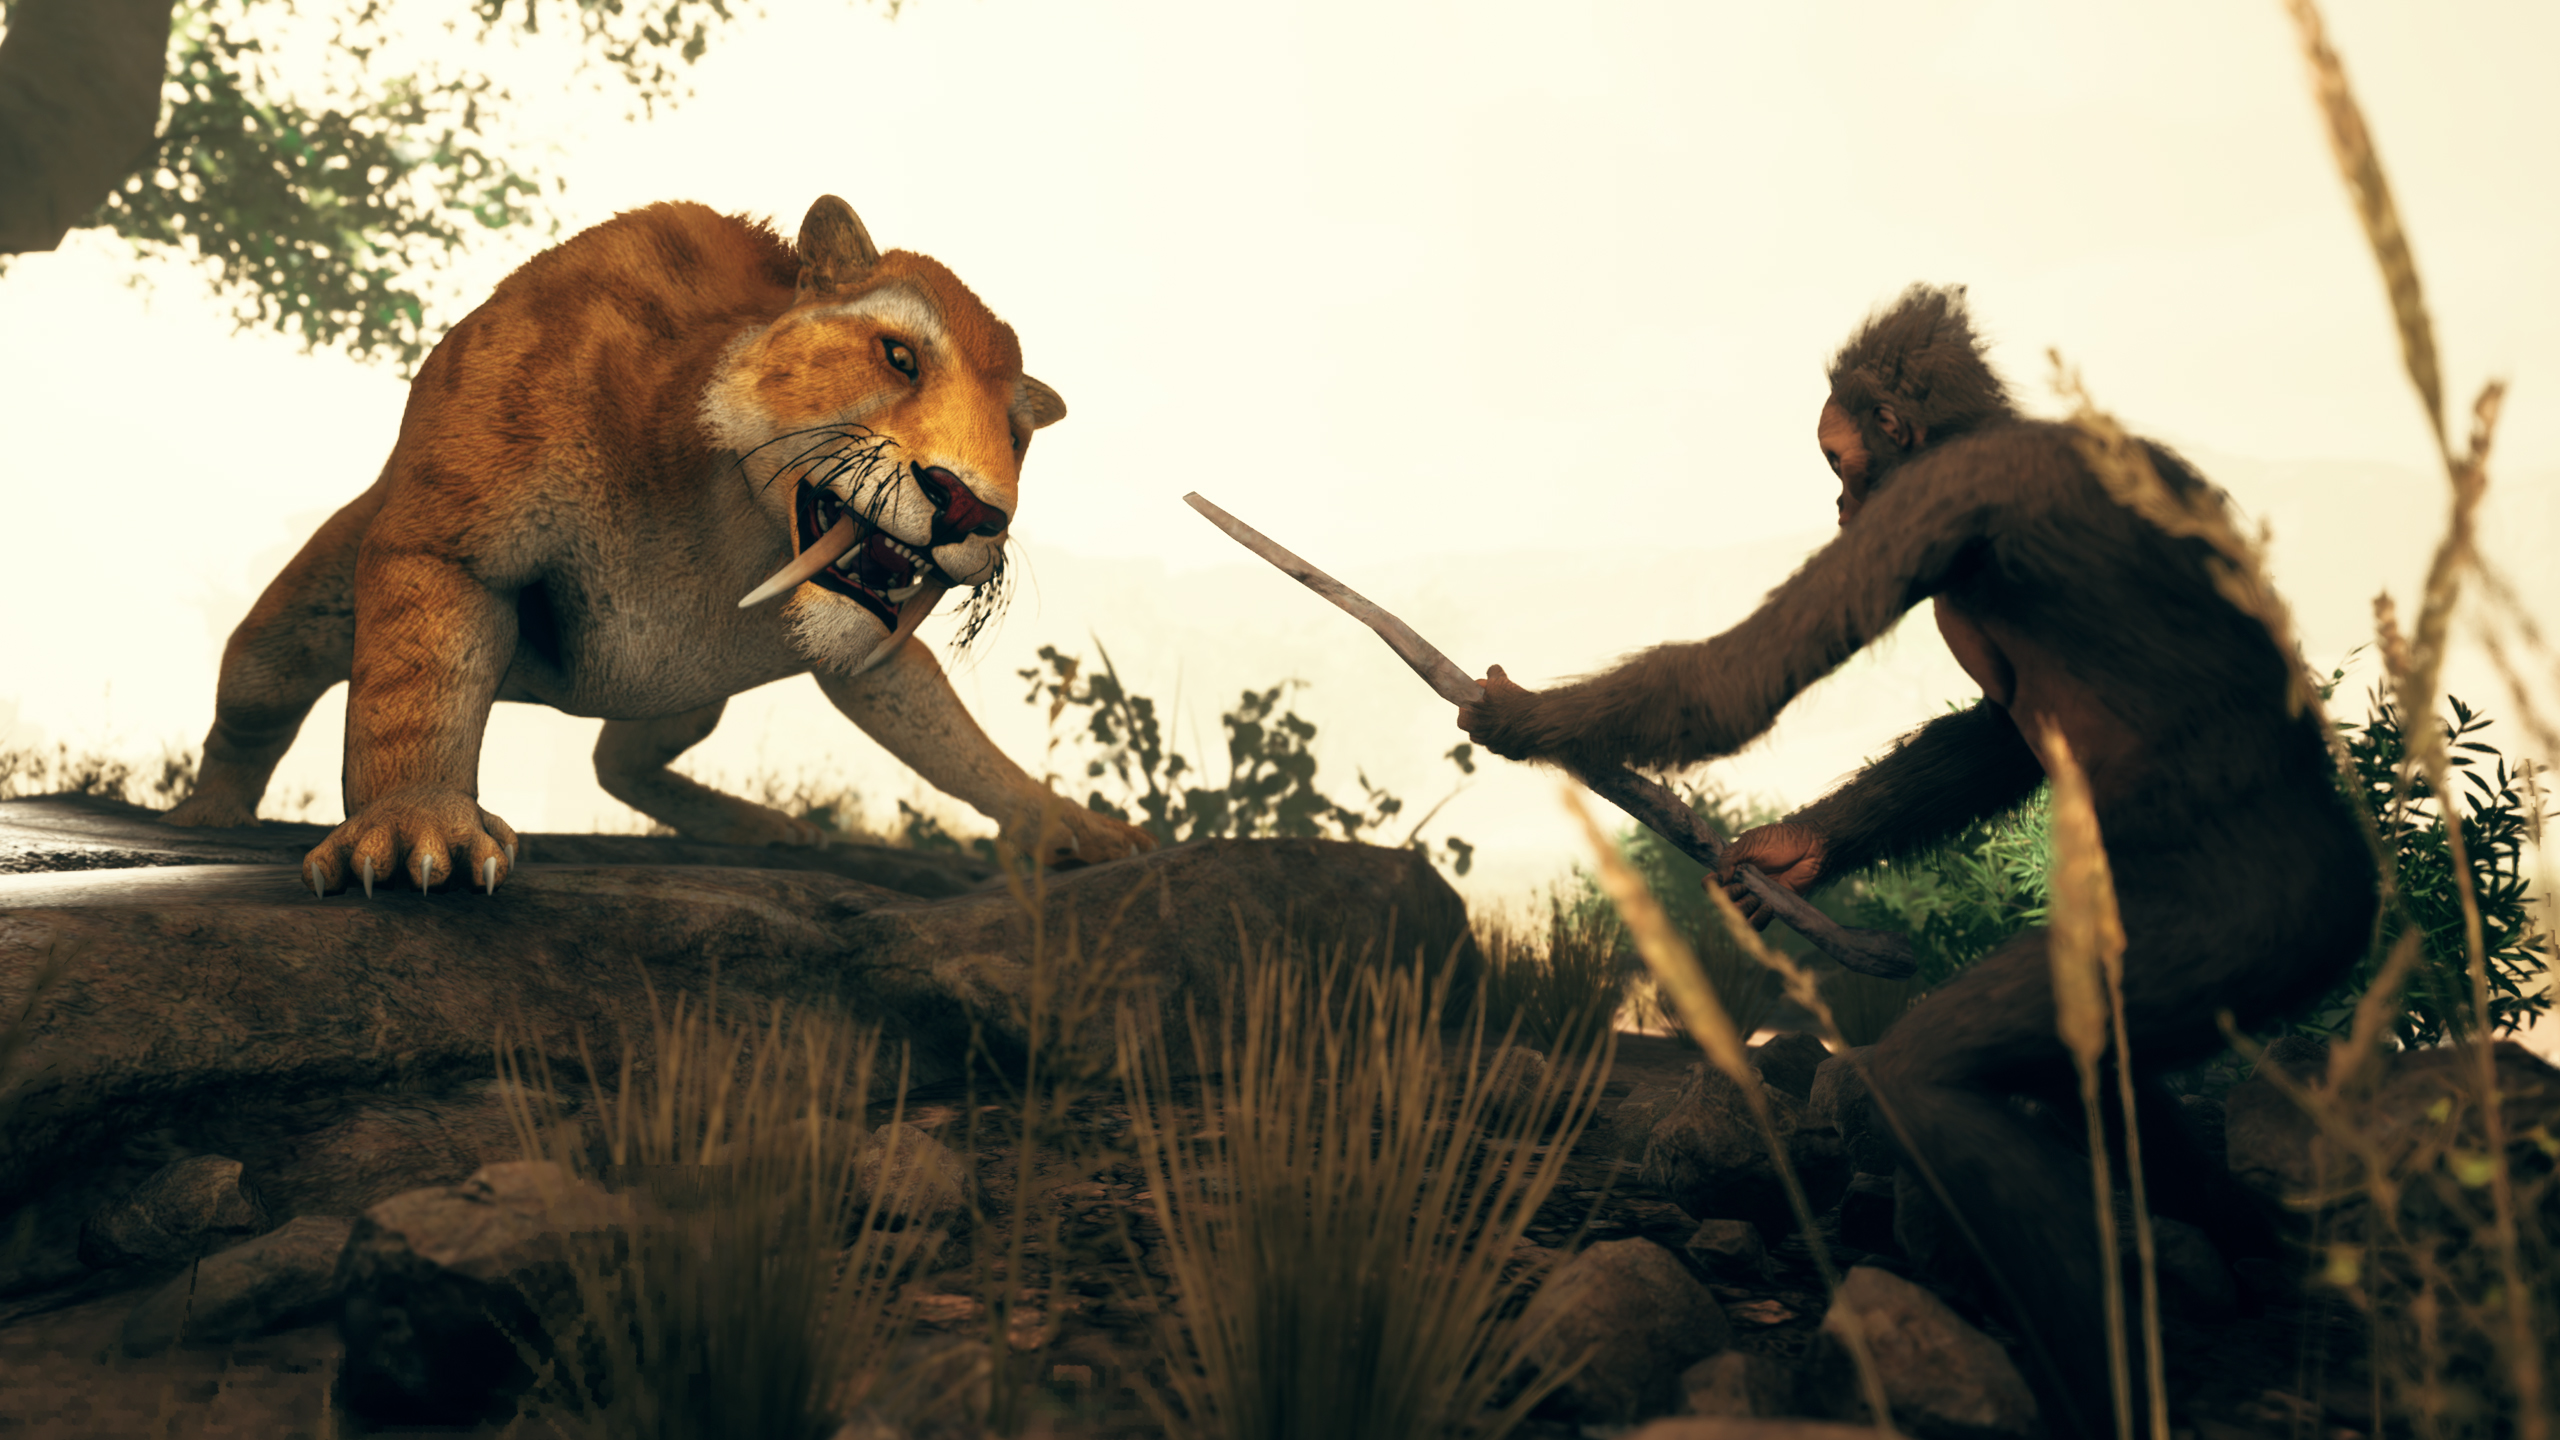 Survive in Ancestors: The Humankind Odyssey will not be easy